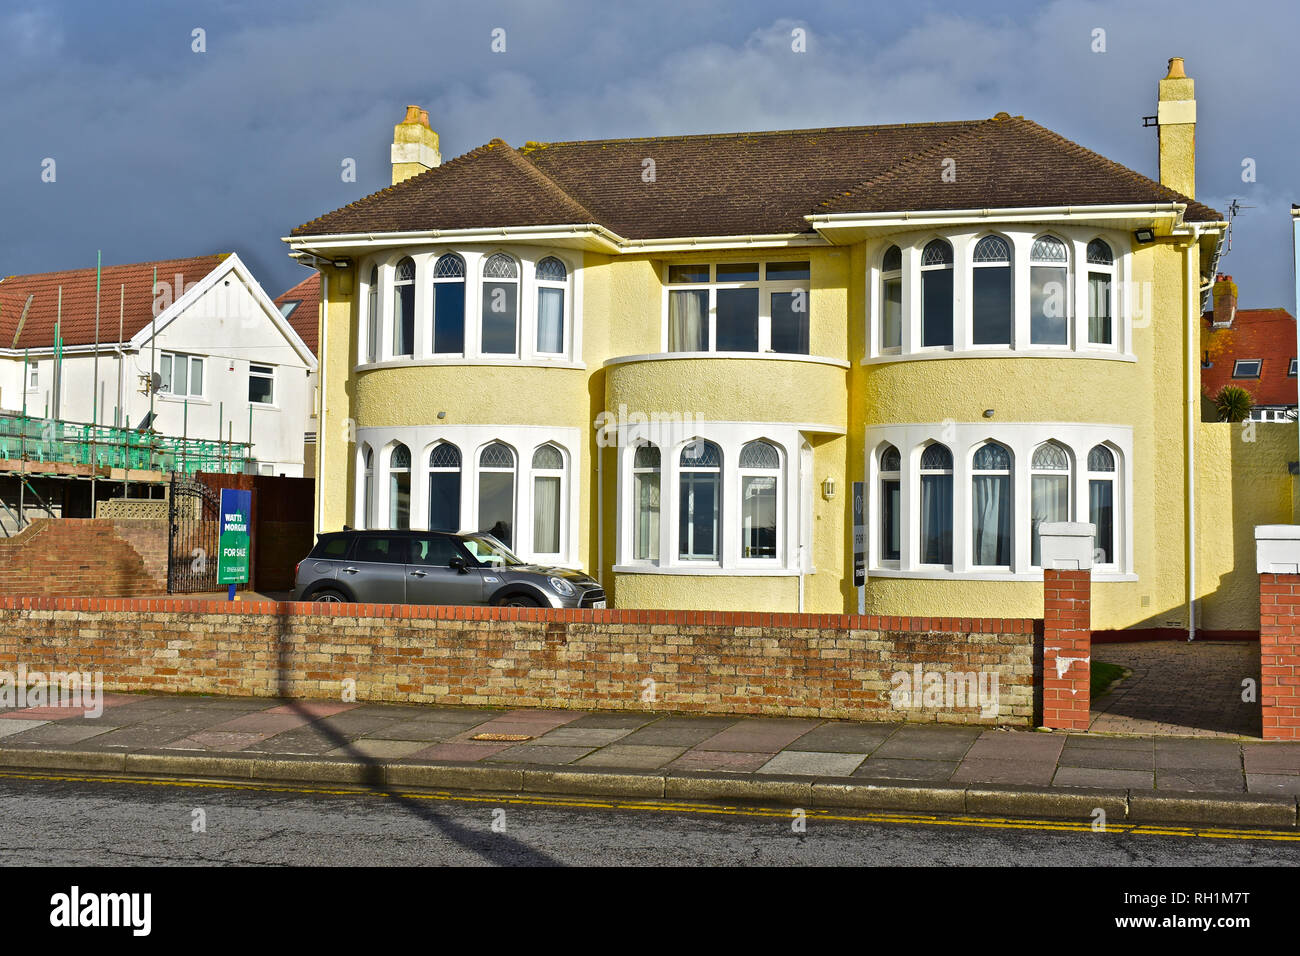 Double fronted with bay windows private house overlooking the sea at West Drive in Porthcawl. Property is for sale at time image was taken. - Stock Image